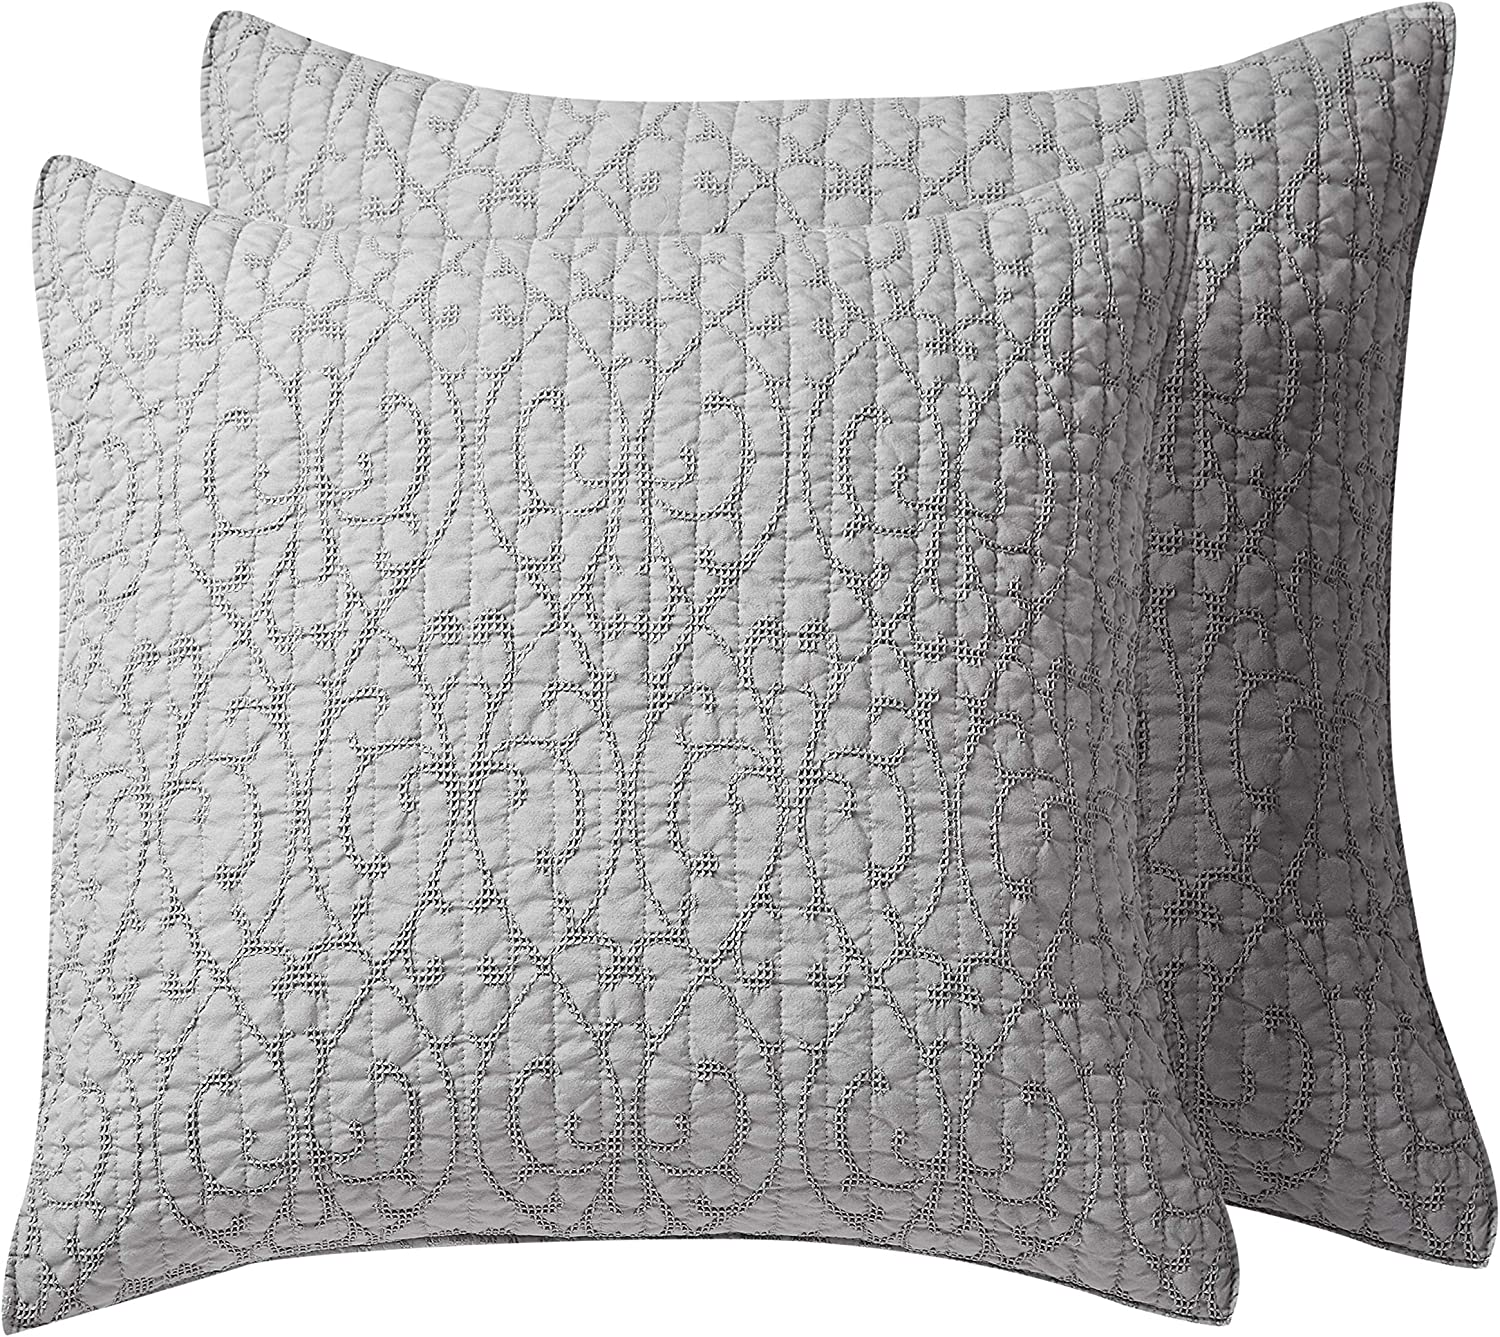 homthreads - Beckett Two Euro Microfiber Pillow Luxury goods Shams At the price of surprise Jacquard